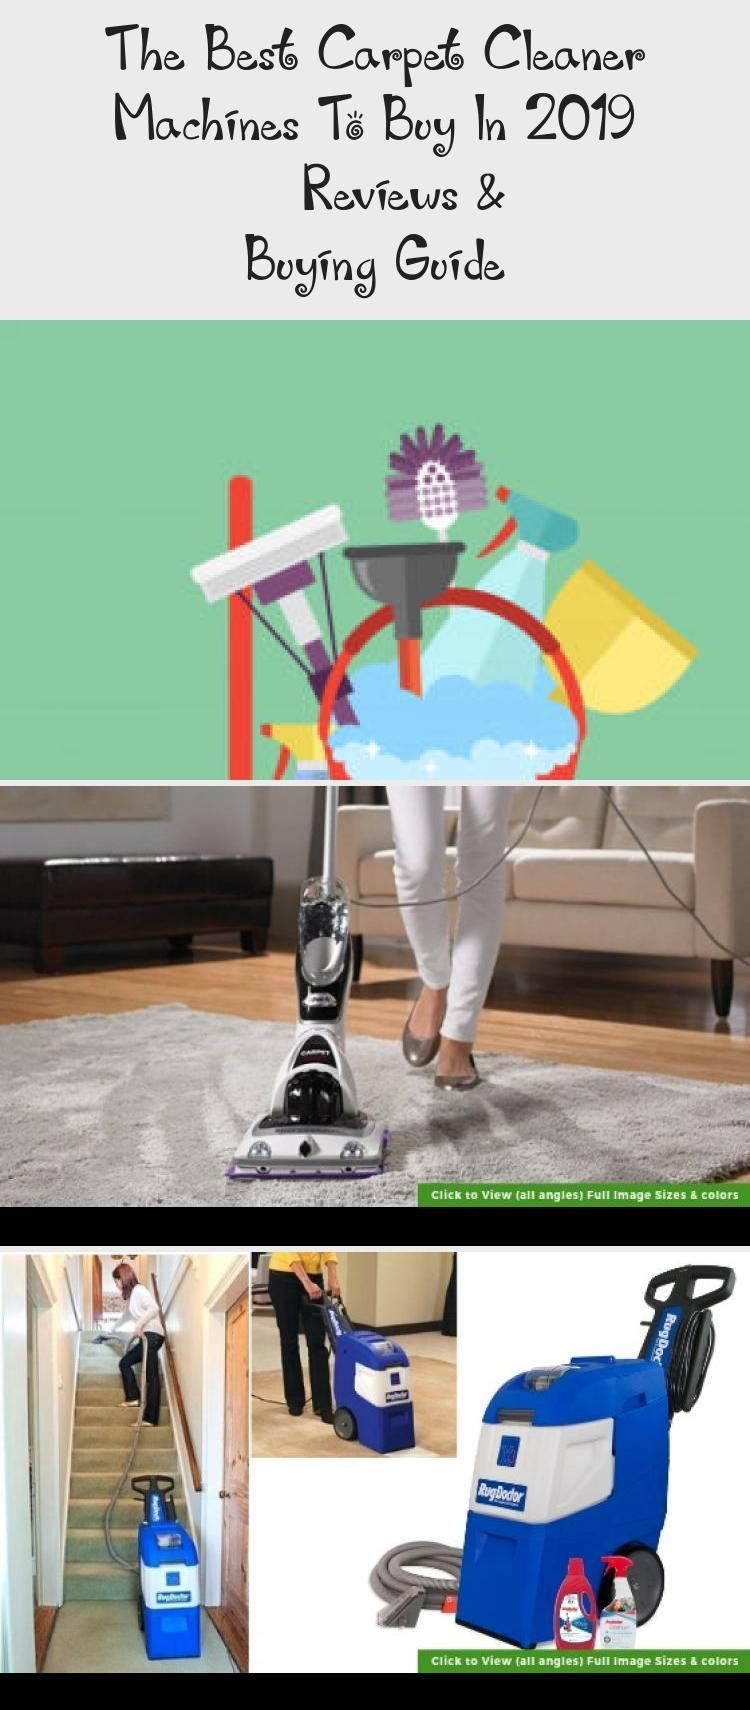 Top Rated Carpet Cleaners To Buy Carpetcleanerforsmell Drycarpetcleaner Resol Top Rated Ca Top Rated Carpet Cleaners How To Clean Carpet Carpet Cleaners